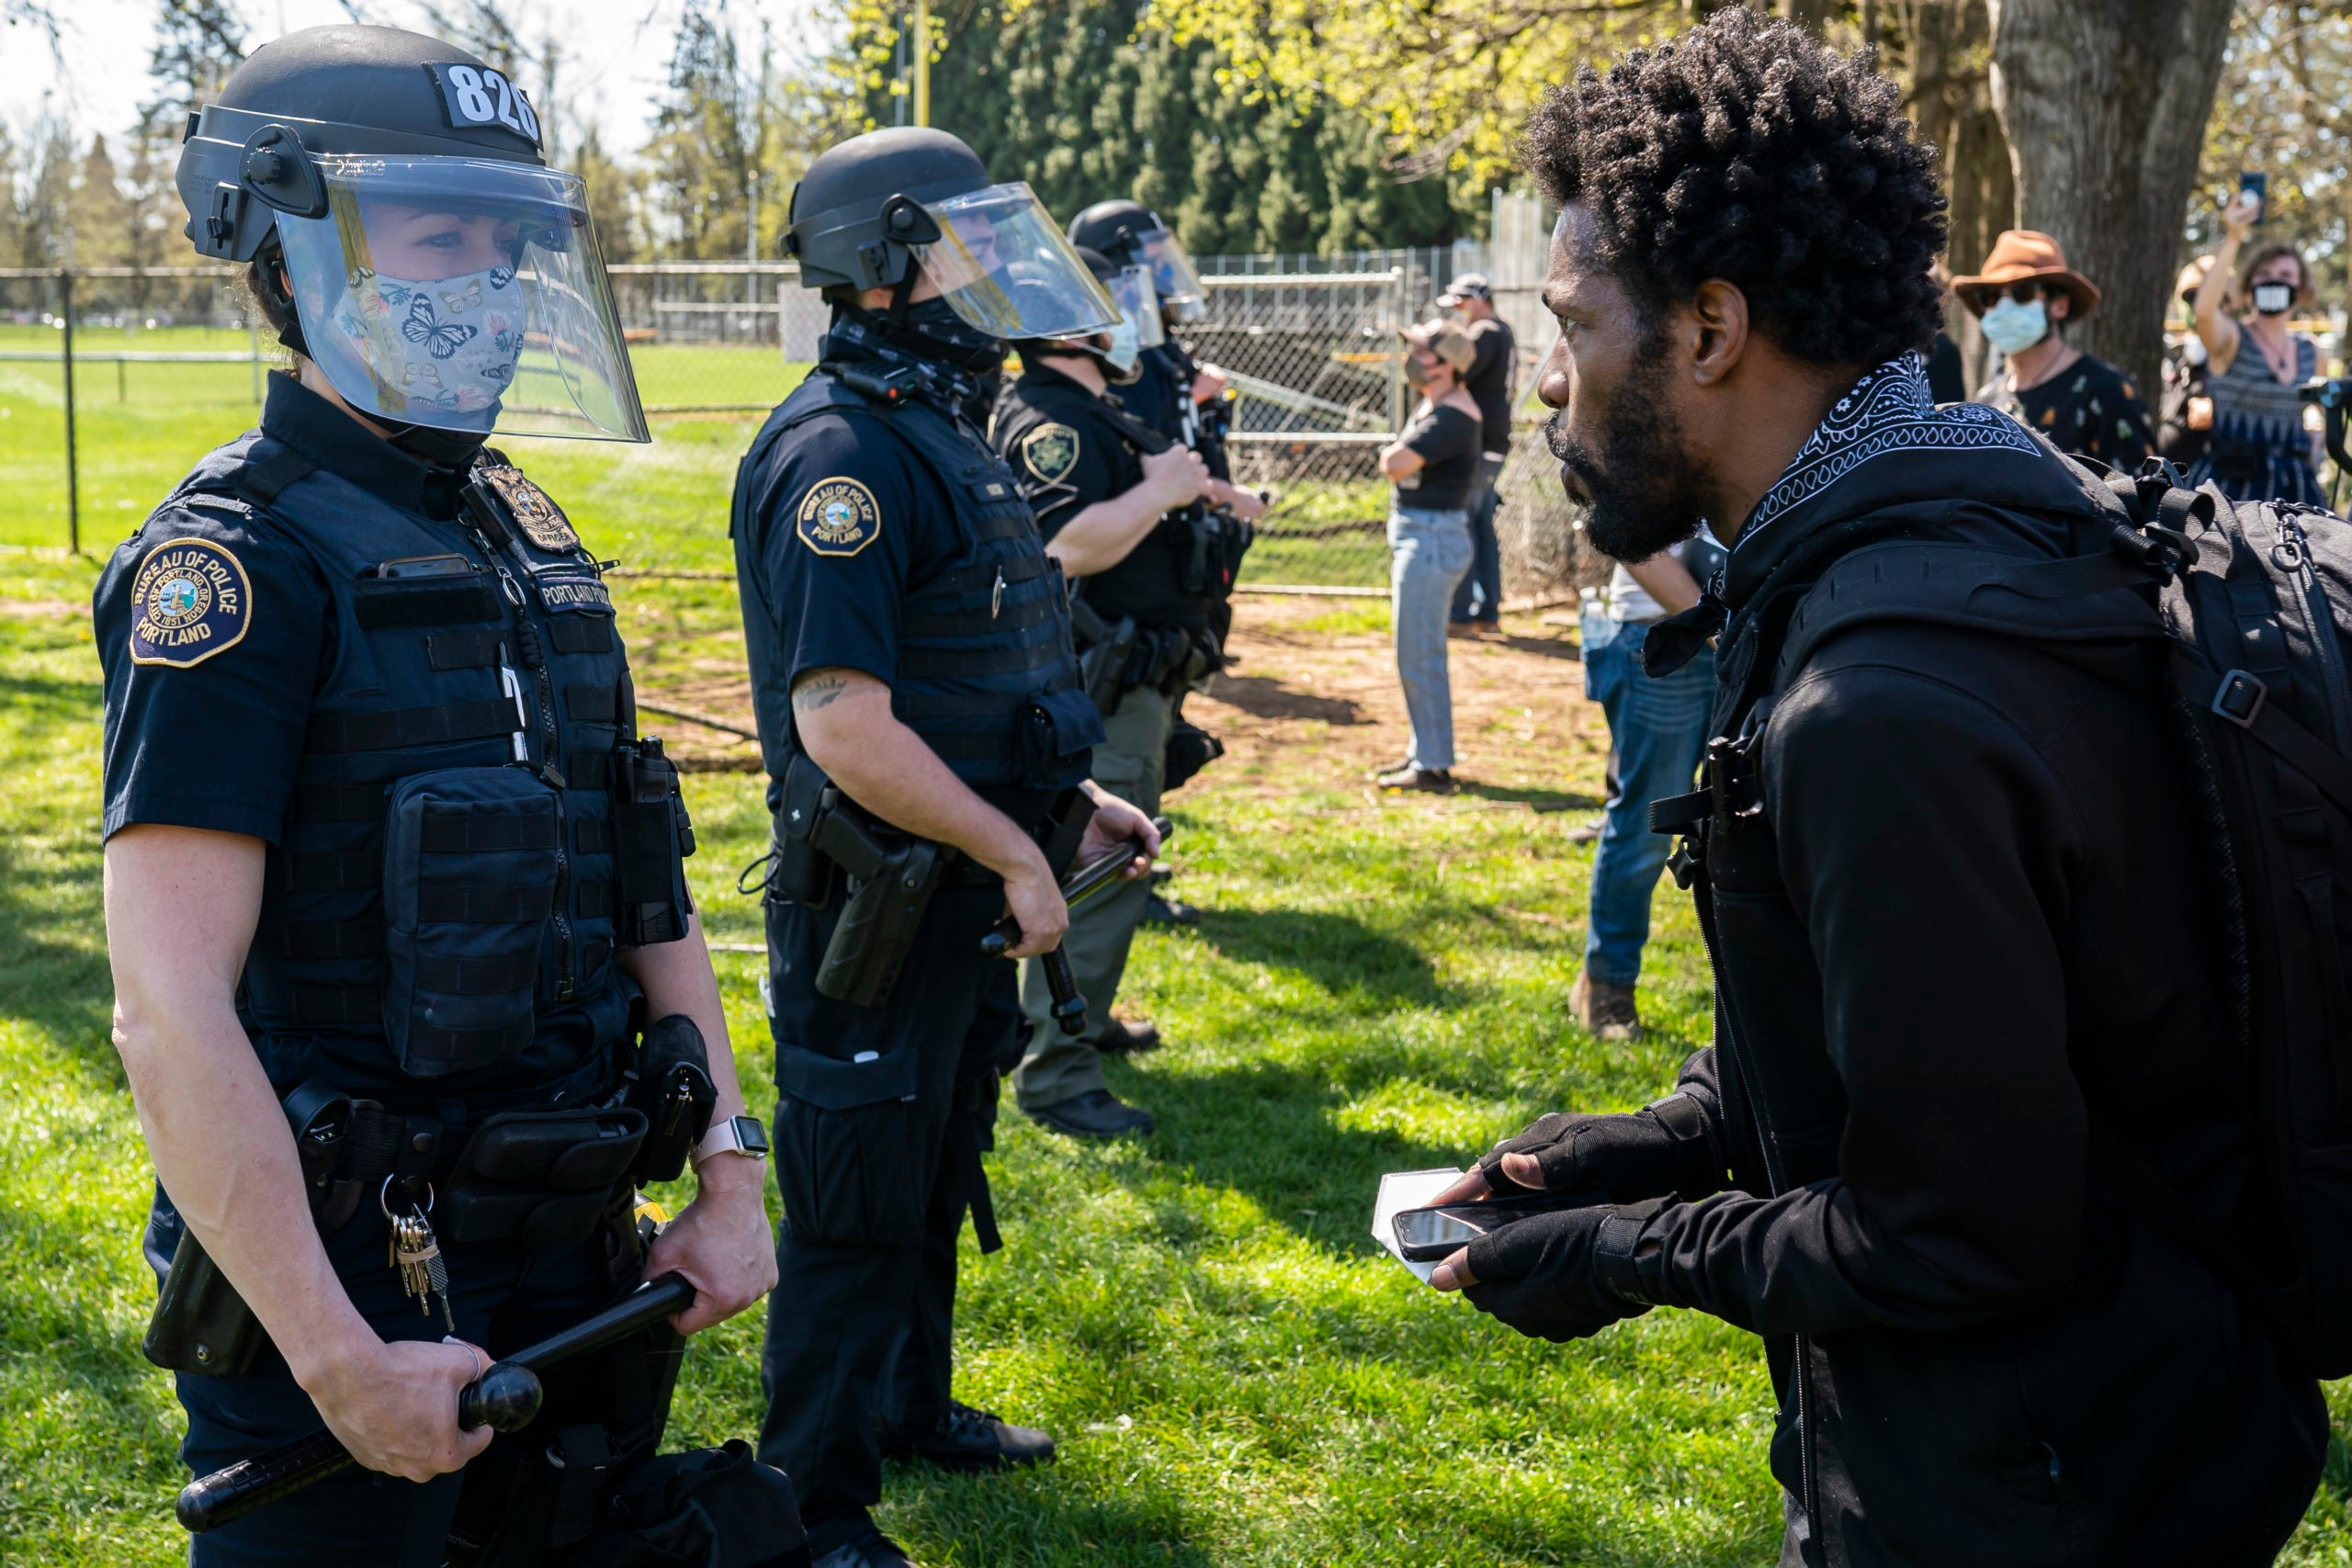 A protester argues with a Portland riot officer following the police shooting of a homeless man in Lents Park on April 16, 2021 in Portland, Oregon. (Photo by Nathan Howard/Getty Images)